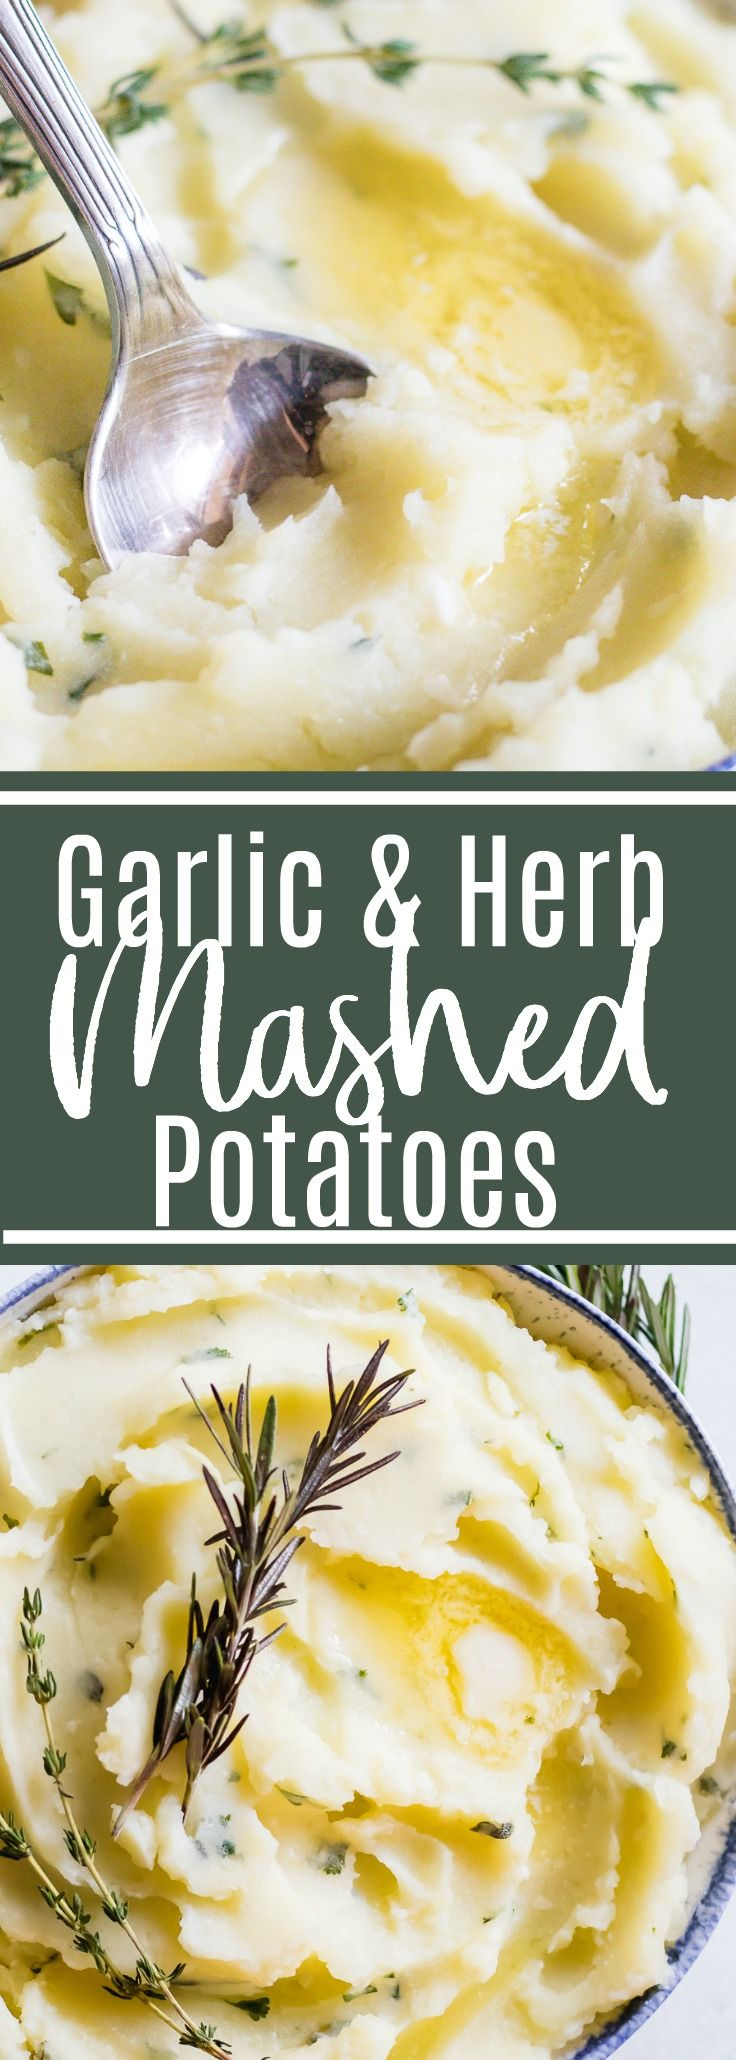 Garlic Herb Mashed Potatoes. The creamiest mashed potato loaded up with garlic and herbs in every bite! Perfect side dish for any meal.#thanksgiving #potatoes #sidedish